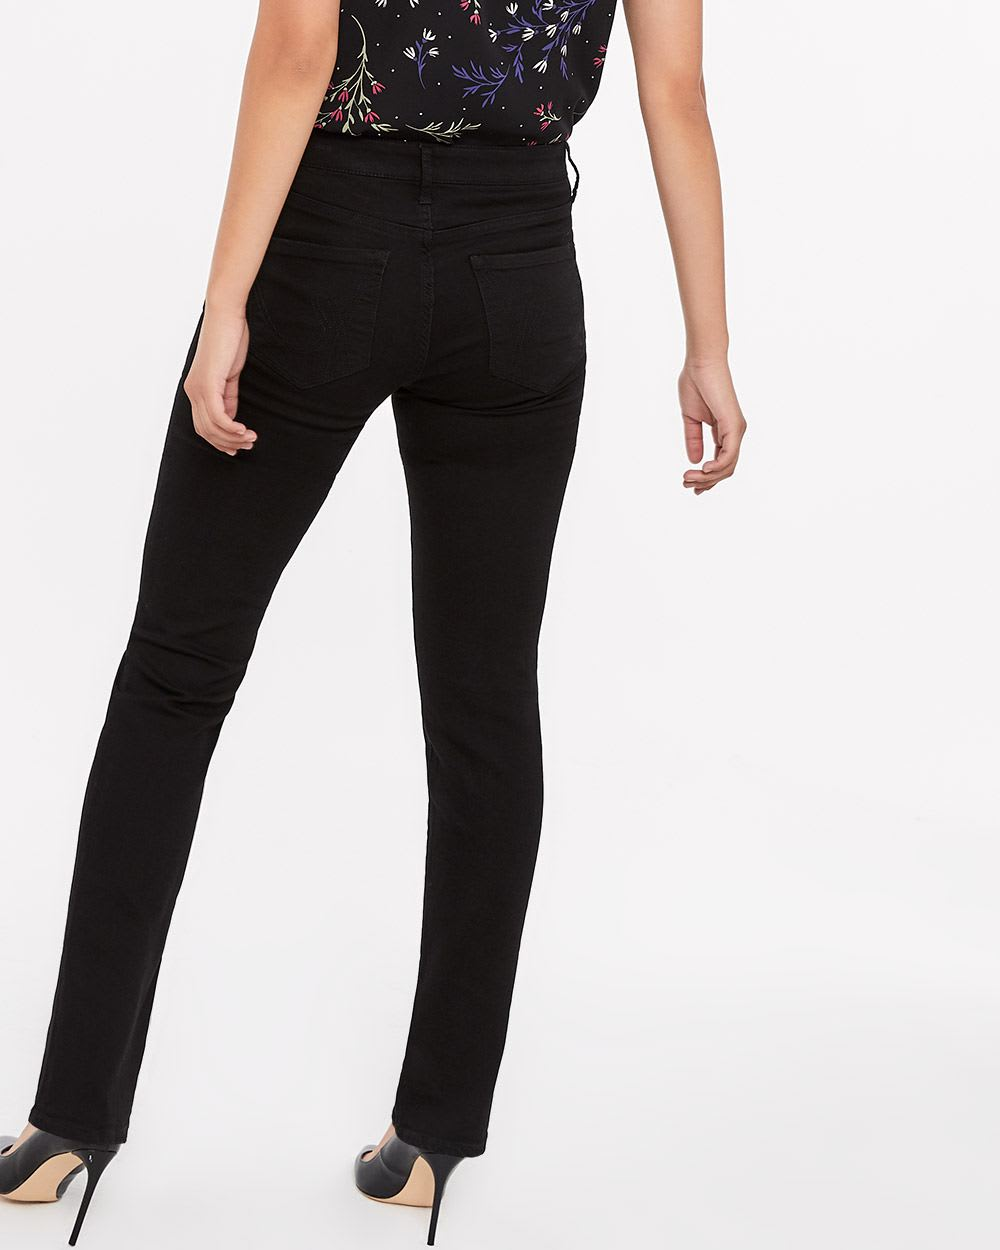 The Insider Black Straight Leg Jeans